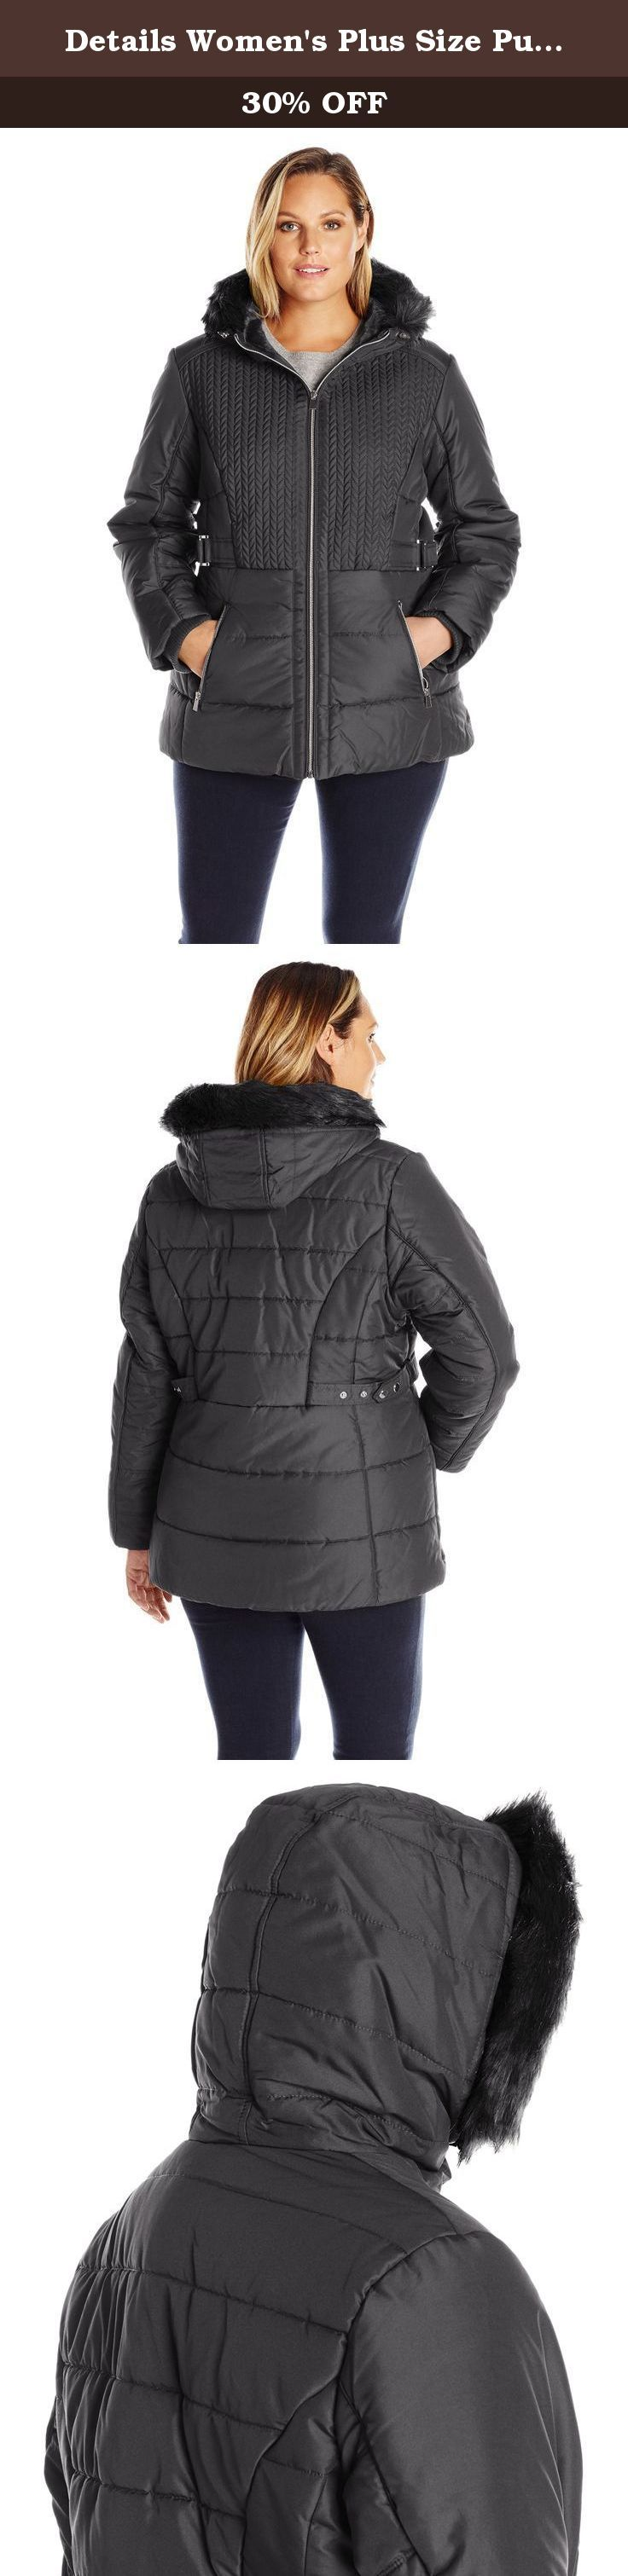 Details Women's Plus Size Puffer Coat with Braided Quilting Faux-Fur Trimmed Hood, Black, 2X. This plus size D.Dresst.A.I.L.S. Puffer coat provides flattering shape with the fashion braiding and side tabs, even with the heavy weight warmth of the coat. Even the way the lines are quilted provides an overall good look to the wearer. Zippers at pockets for added security. 30 inch.